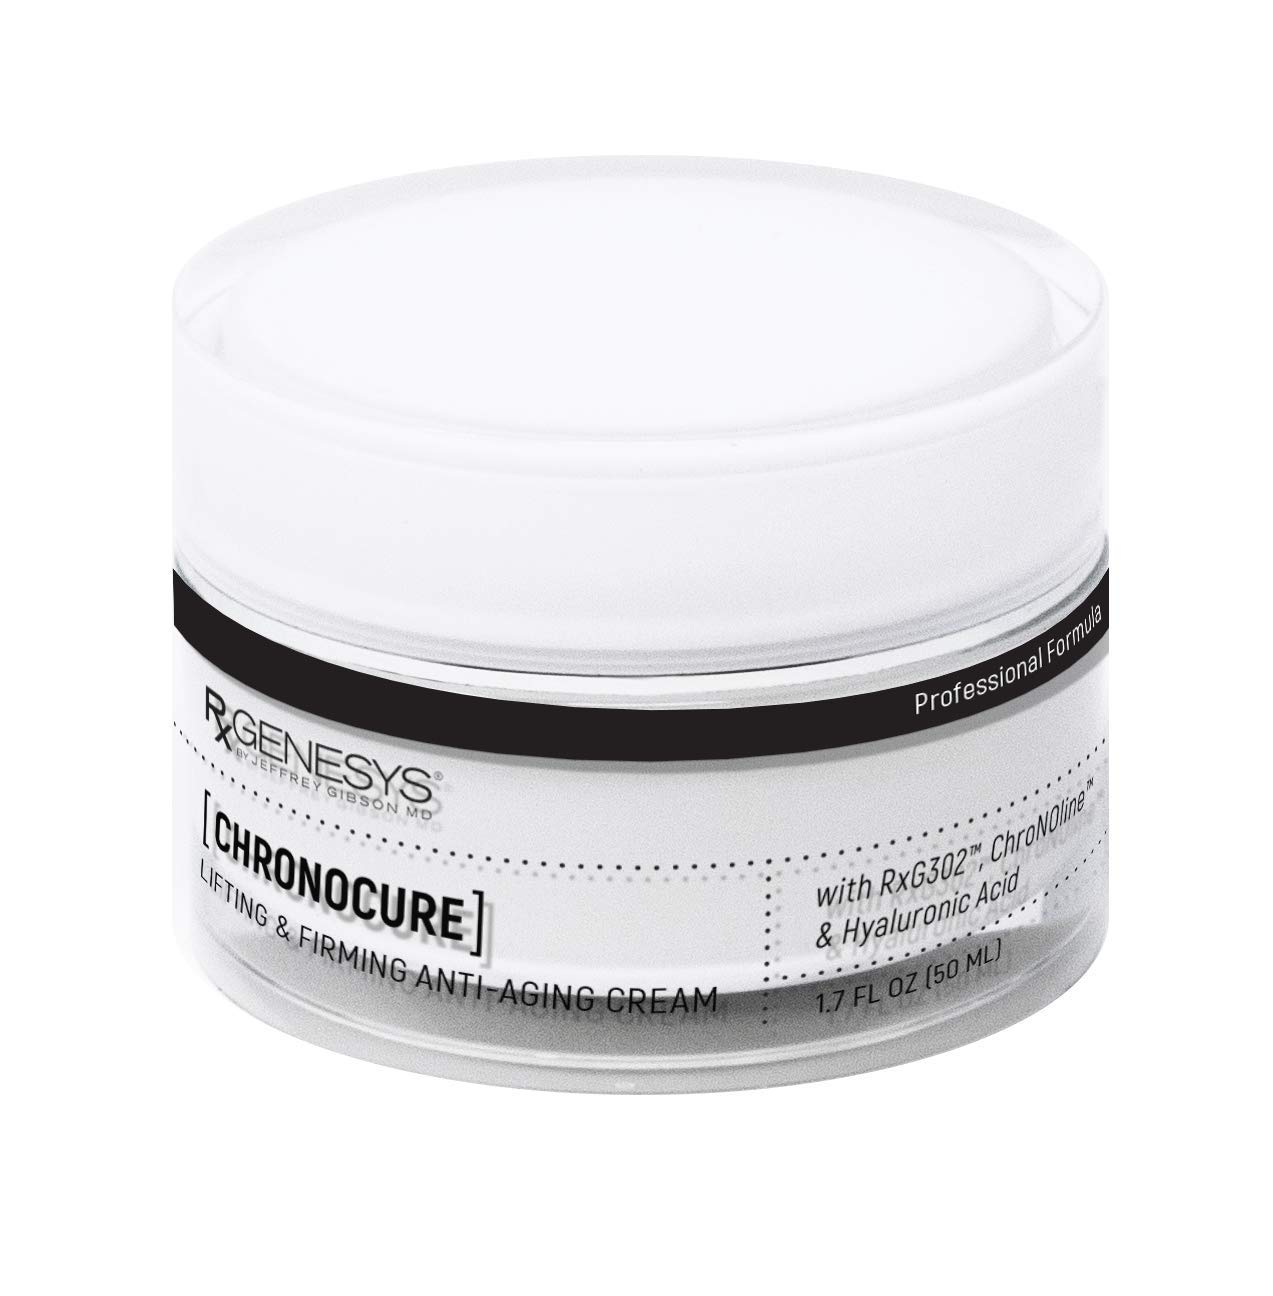 RxGenesys ChronoCure - Face & Neck Lifting & Firming Anti-aging Cream by RXGENESYS